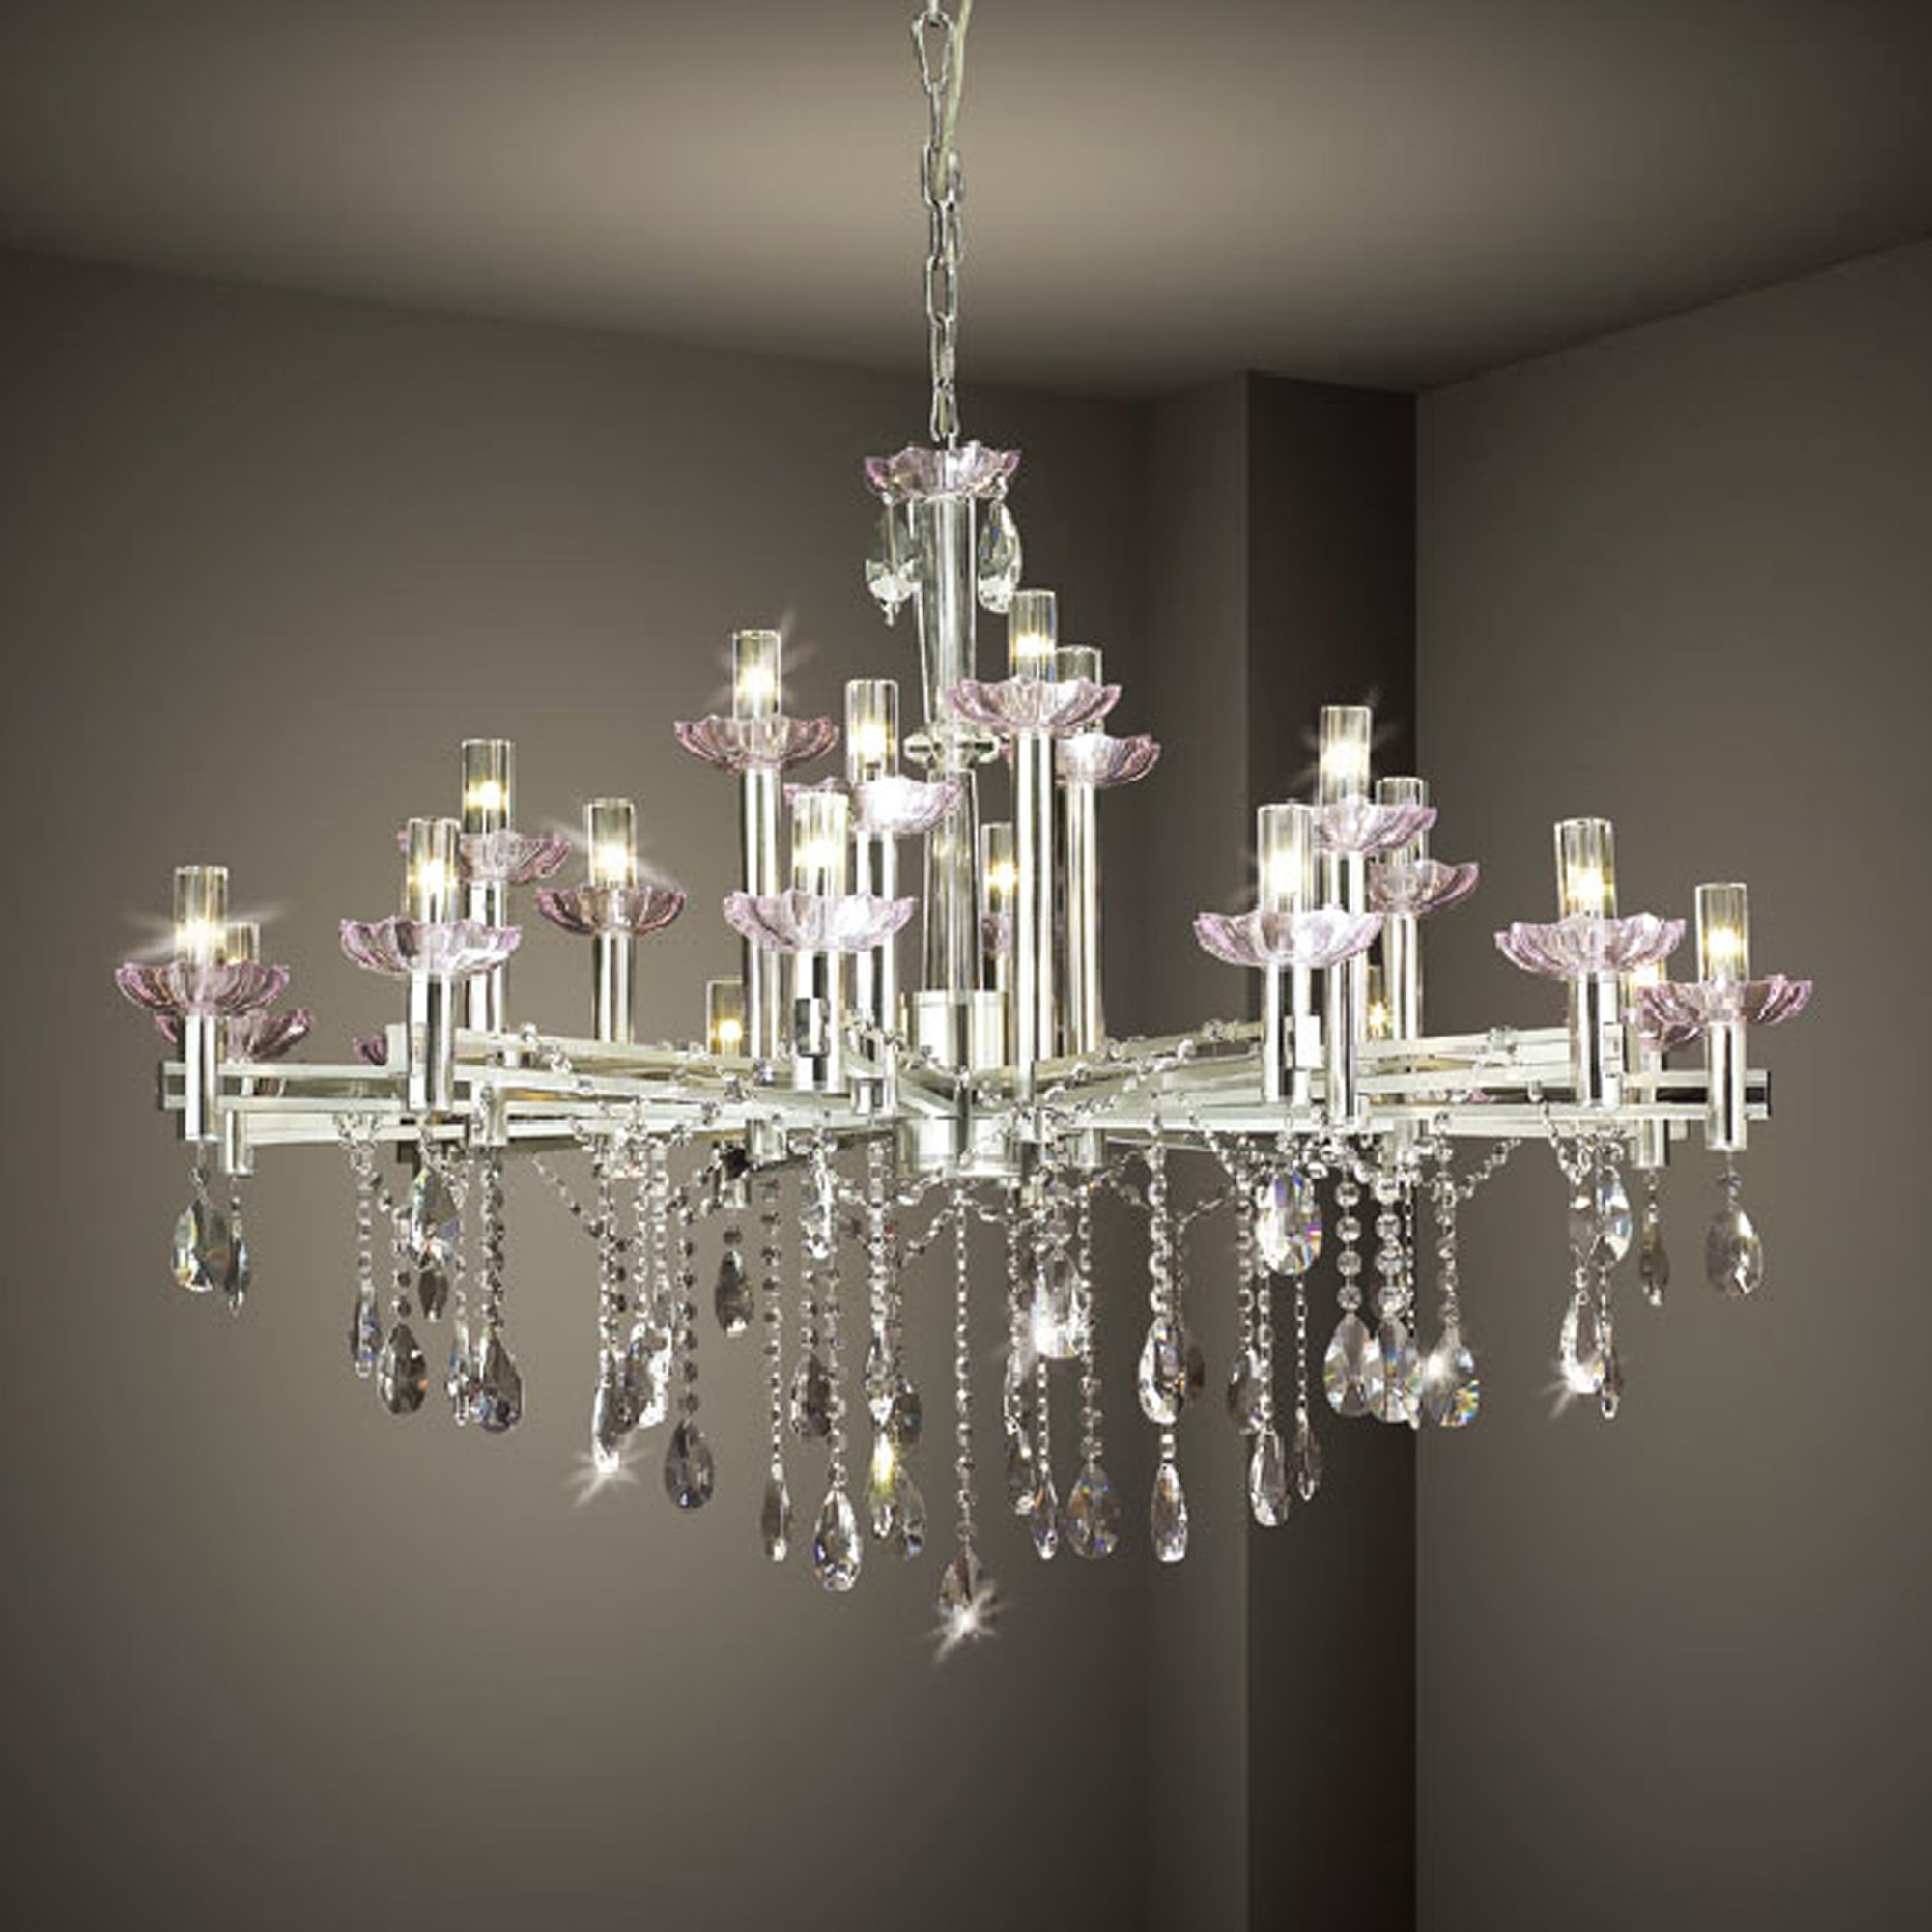 Lighting Chandeliers For Dining Room Contemporary Wall Sconce For Chandelier Wall Lights (Image 7 of 15)